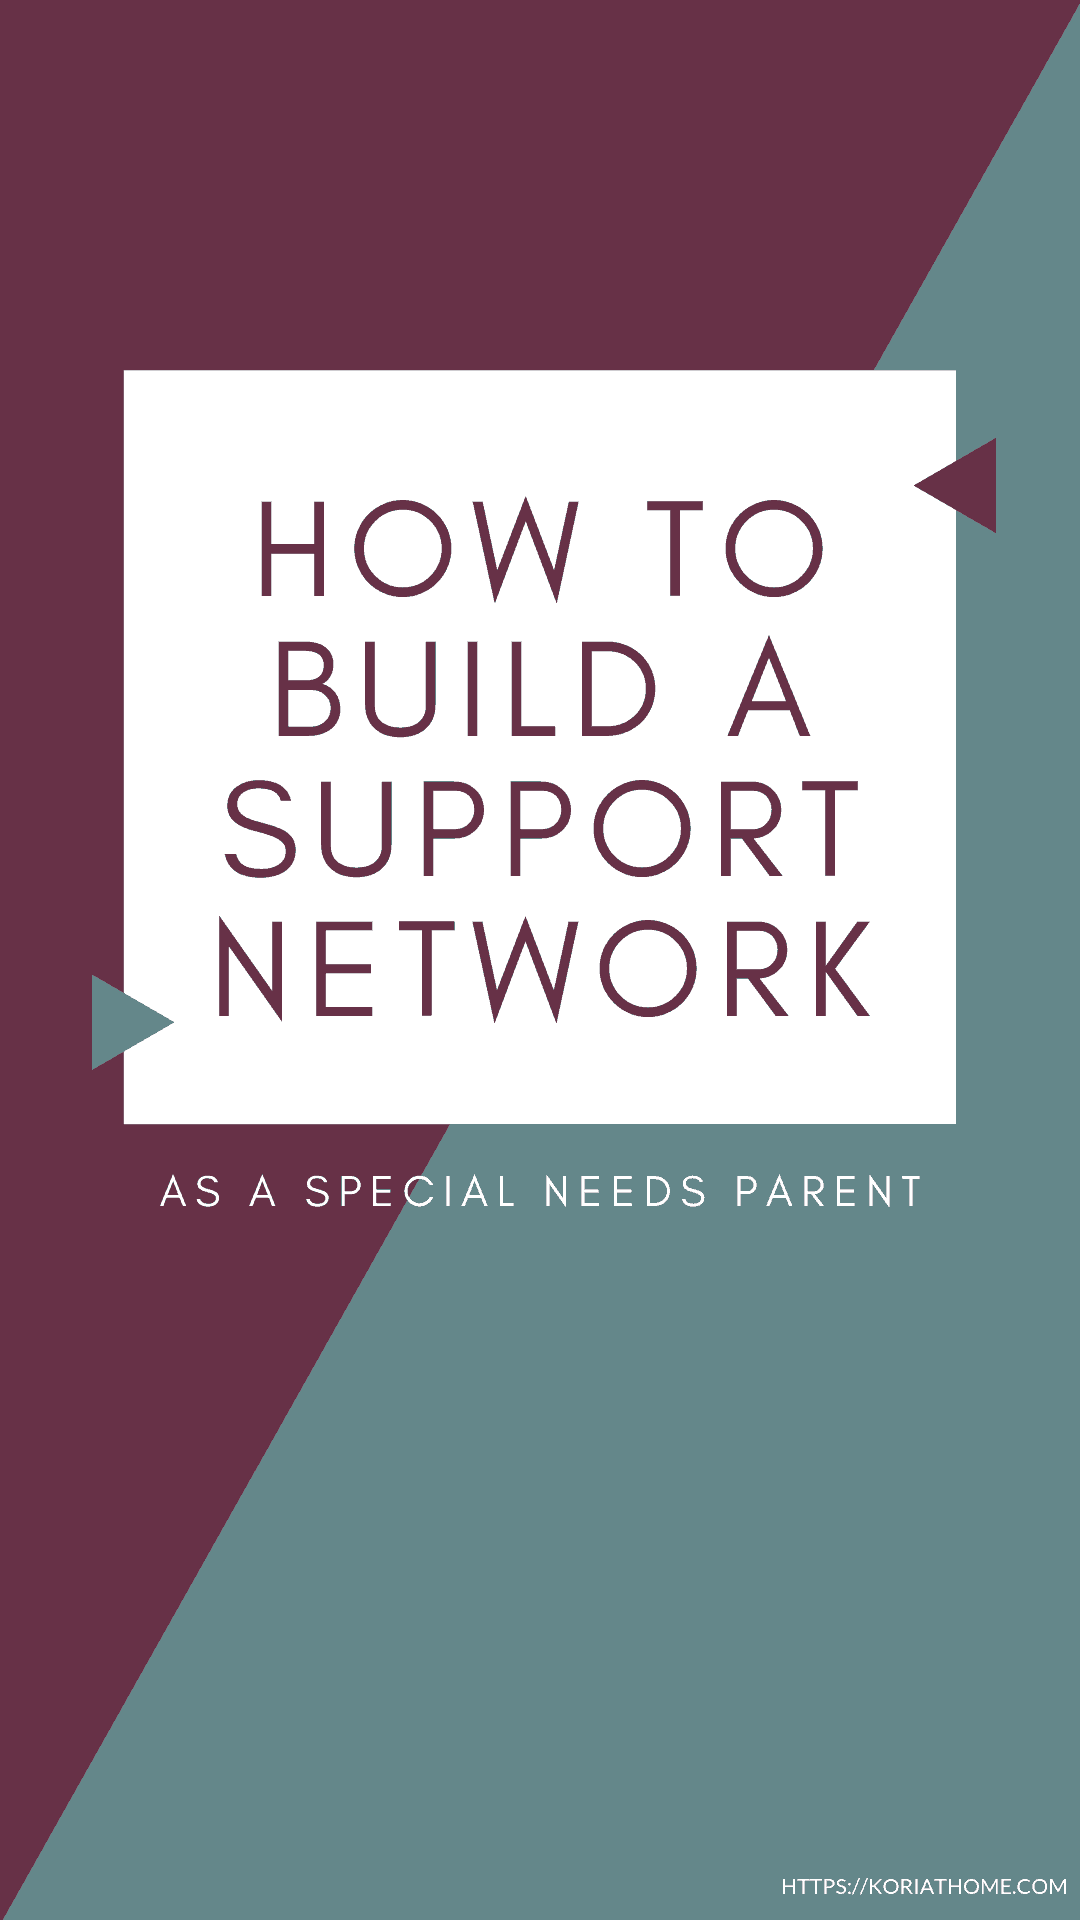 How to Build a Support Network as a Special Needs Parent 6